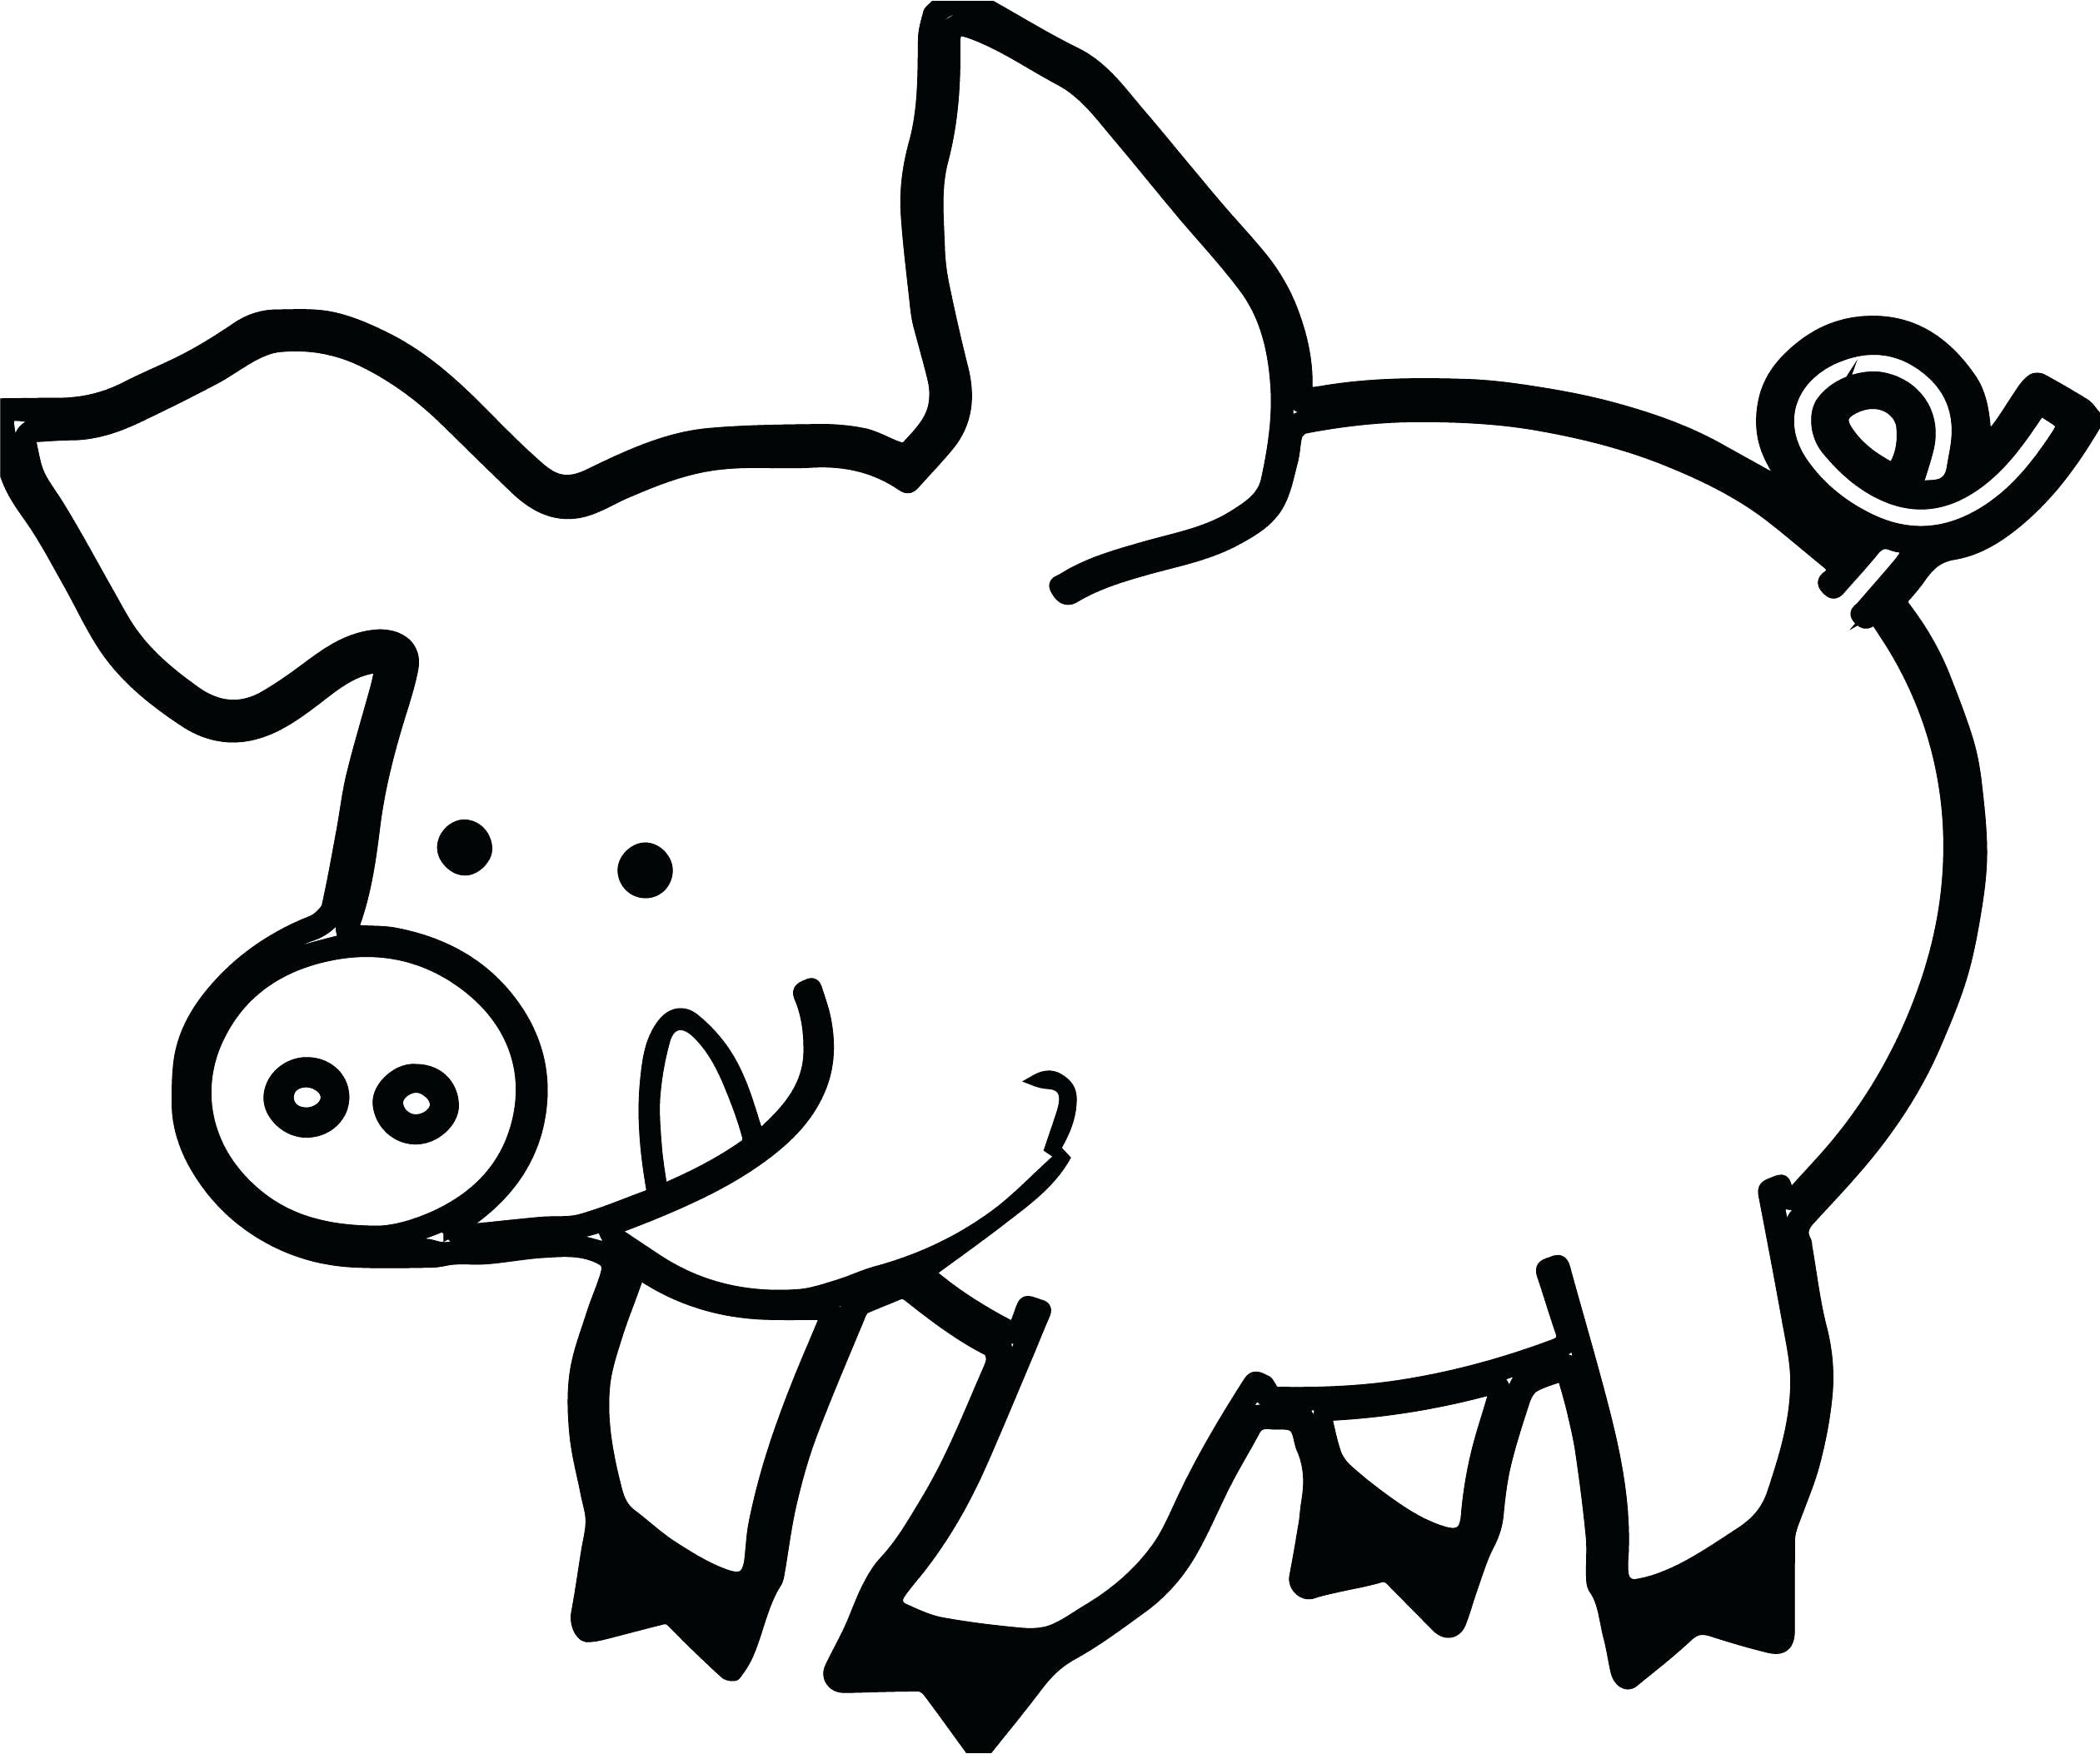 Pig face clipart black and white download Pig Face Drawing 35 20 Clipart Black And White | Printables ... download